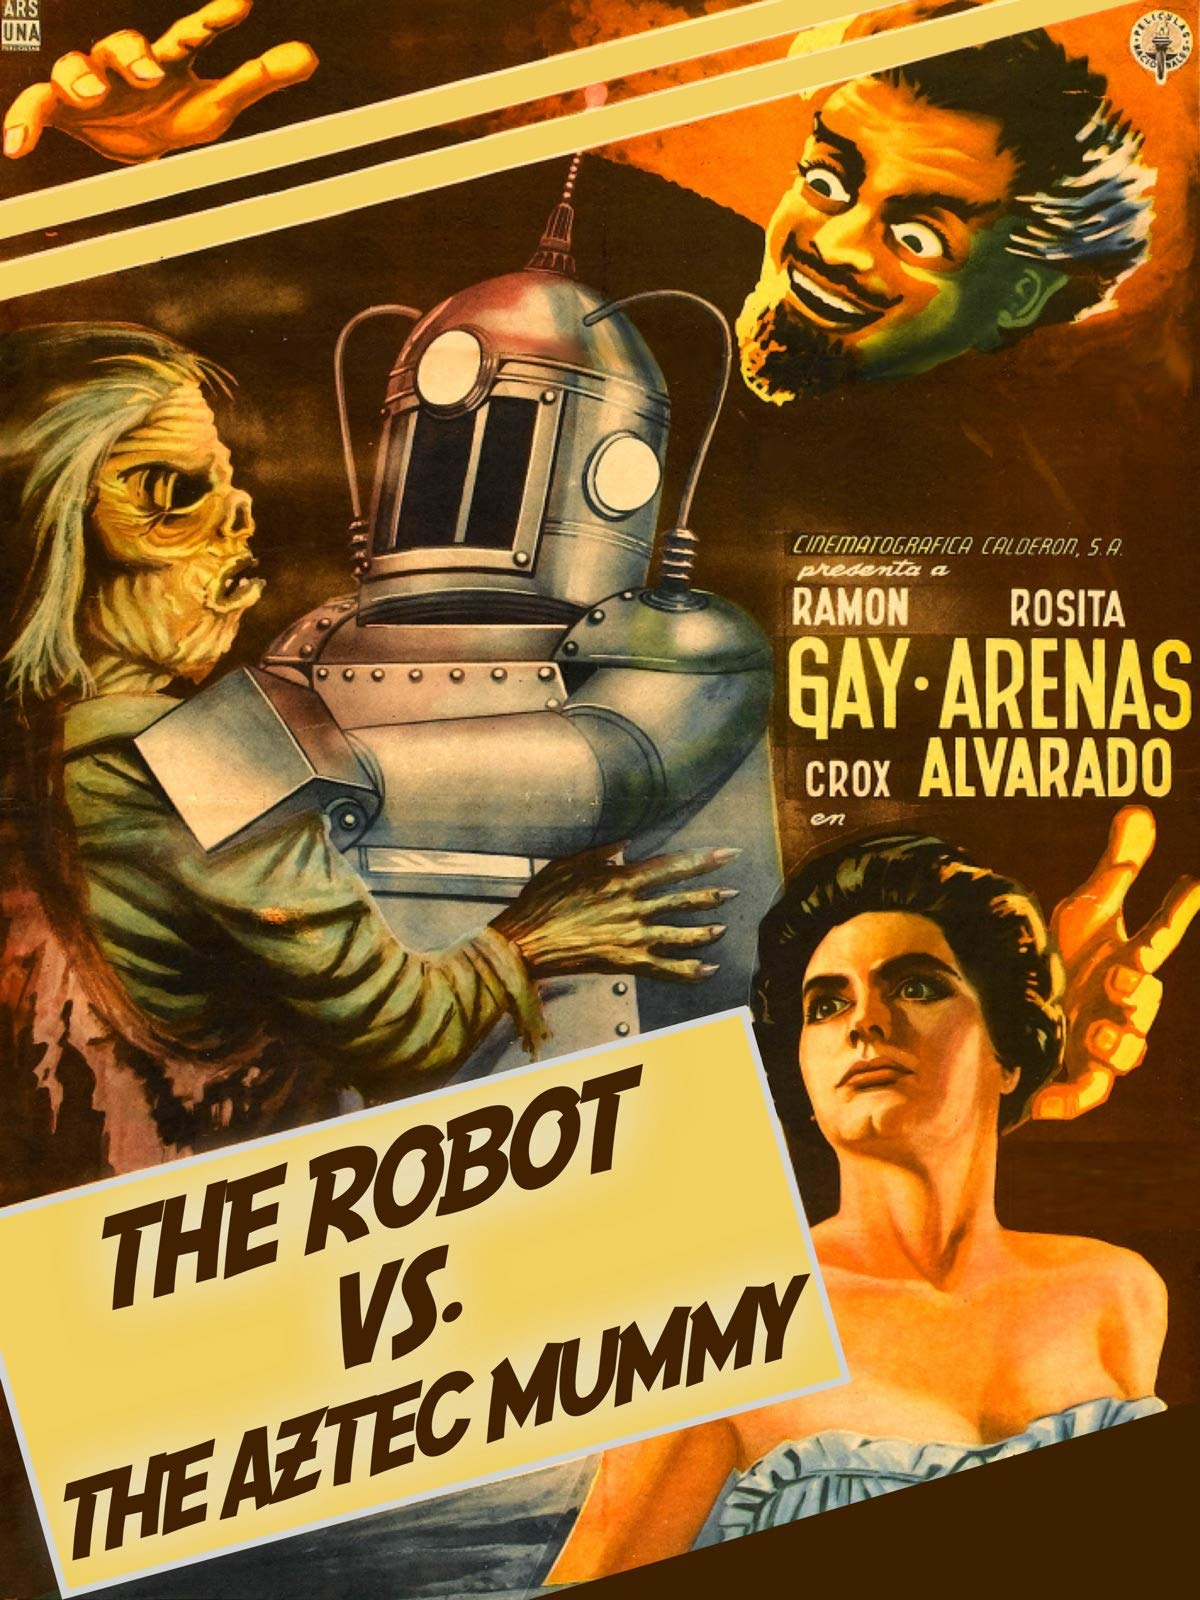 The Robot vs. The Aztec Mummy directed by Rafael Portillo